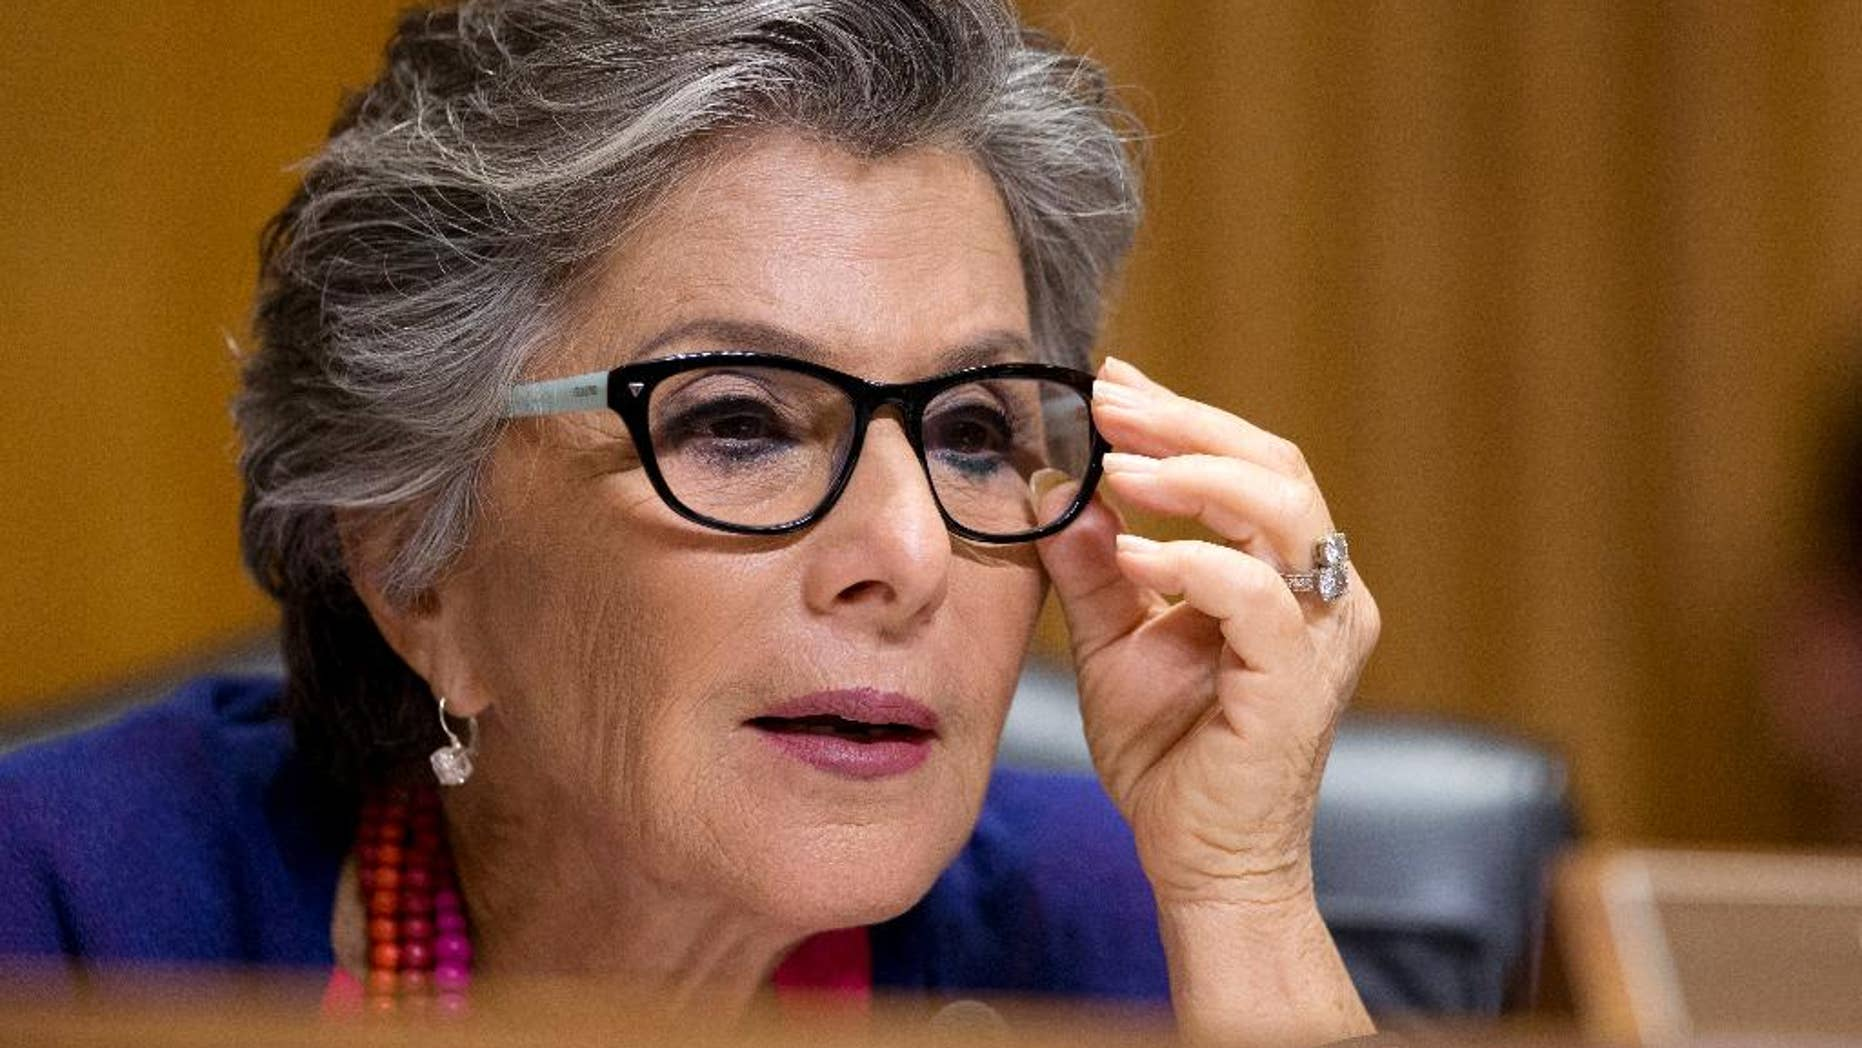 Why the liberal news media is ignoring the Barbara Boxer assault right now